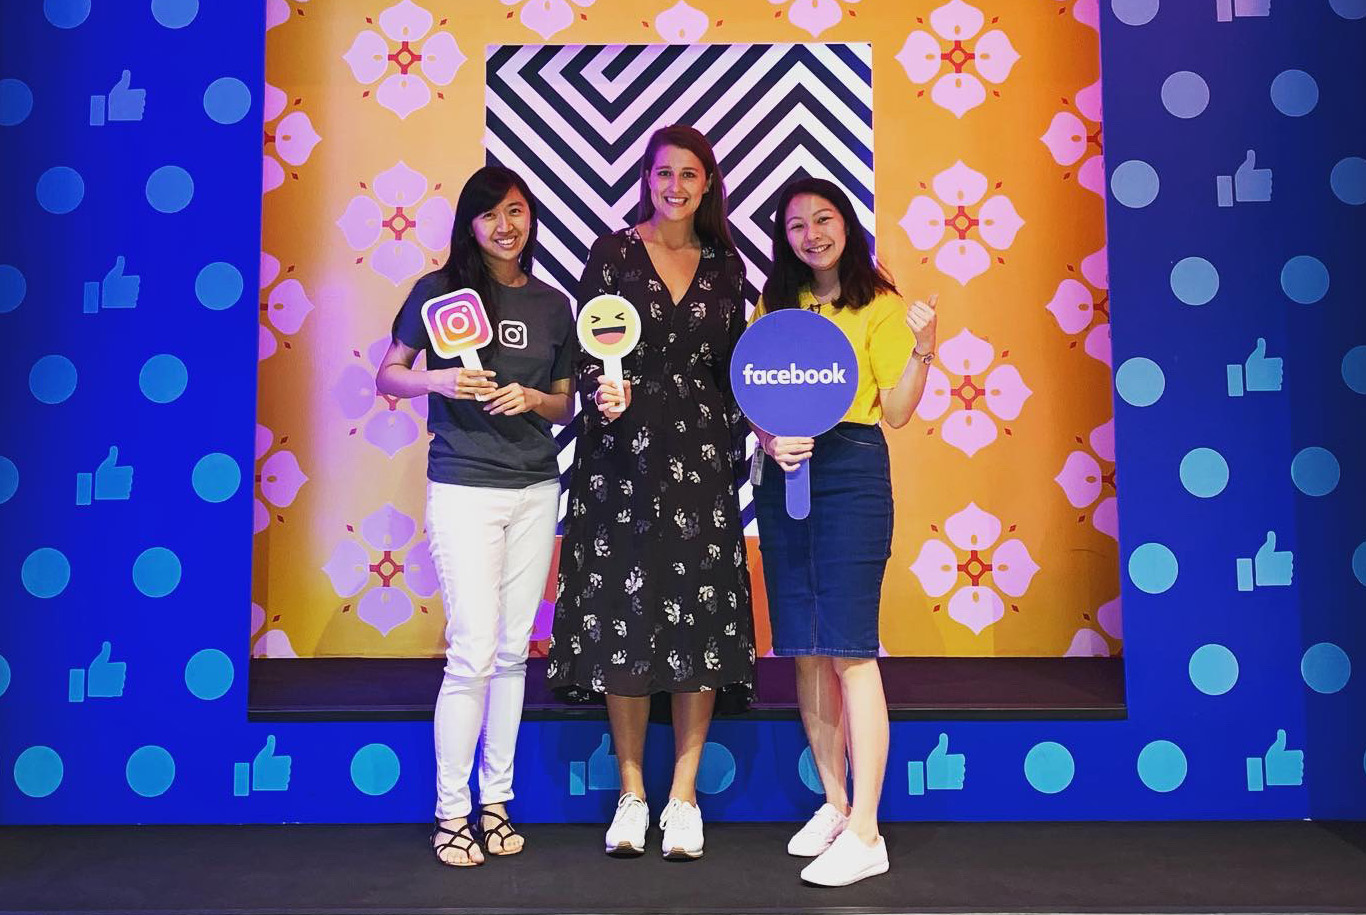 Hannah at Facebook HQ in Singapore2